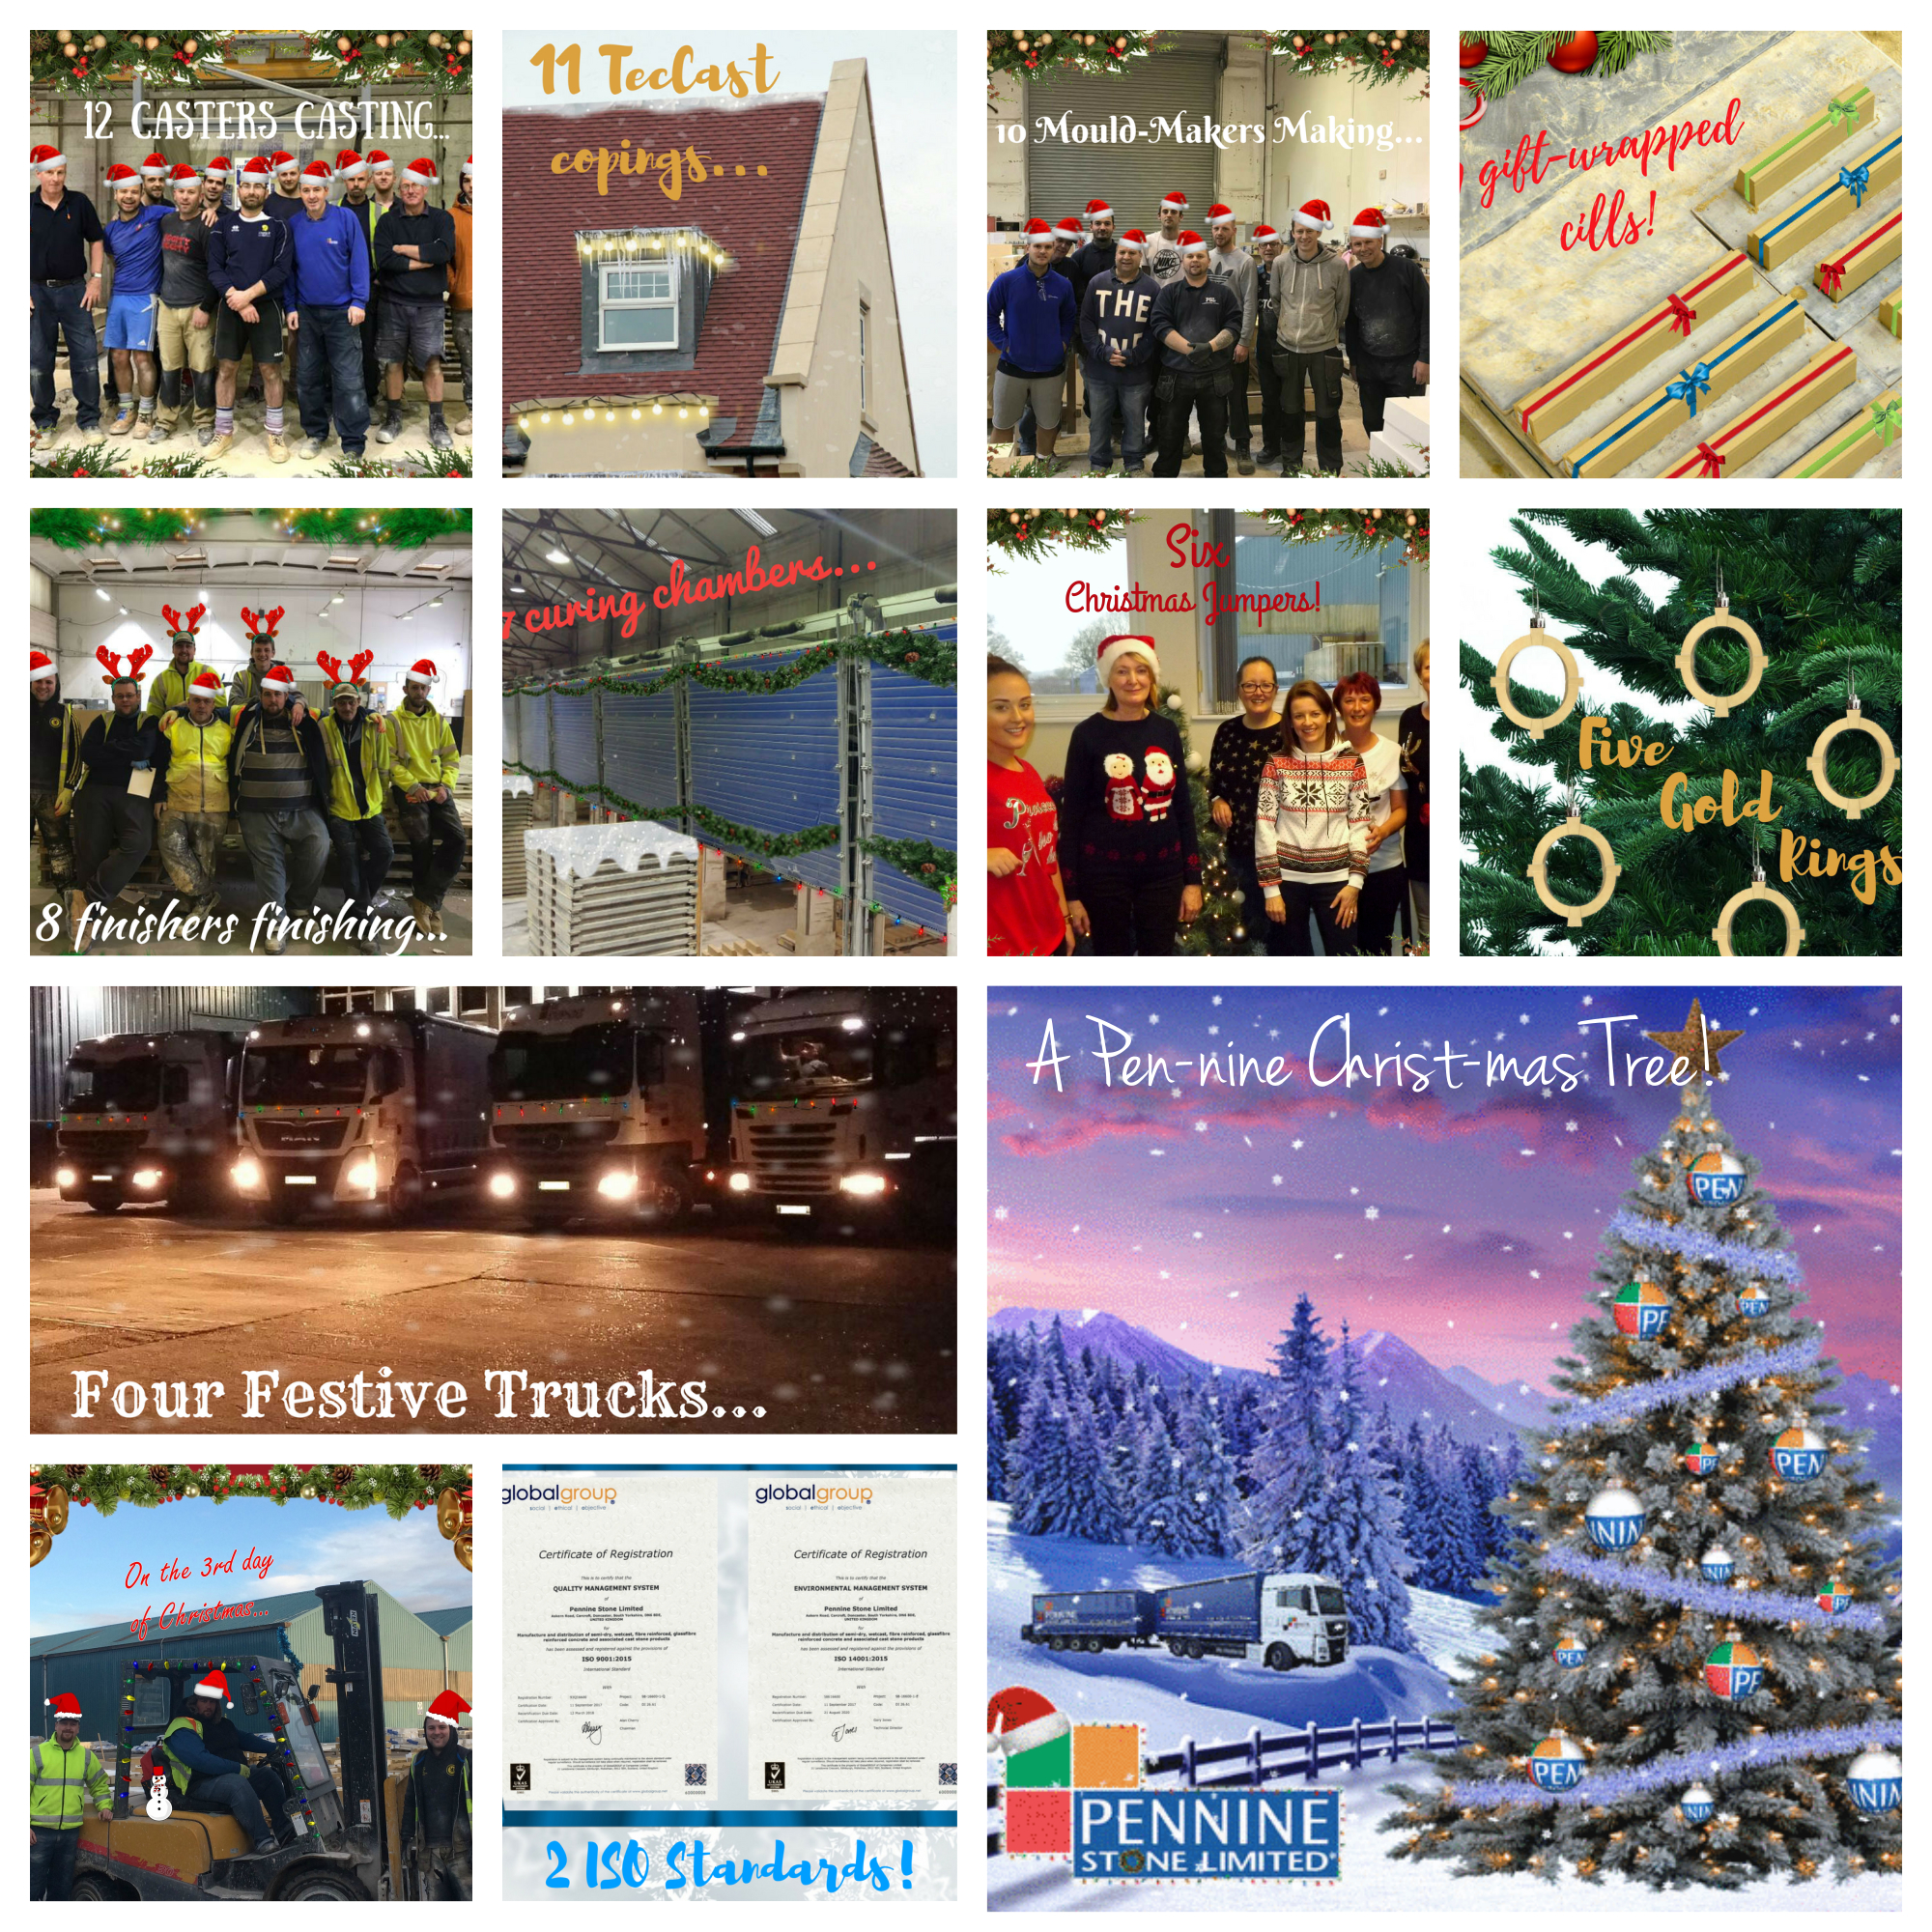 Pennine Stone's 12 Days of Christmas Countdown